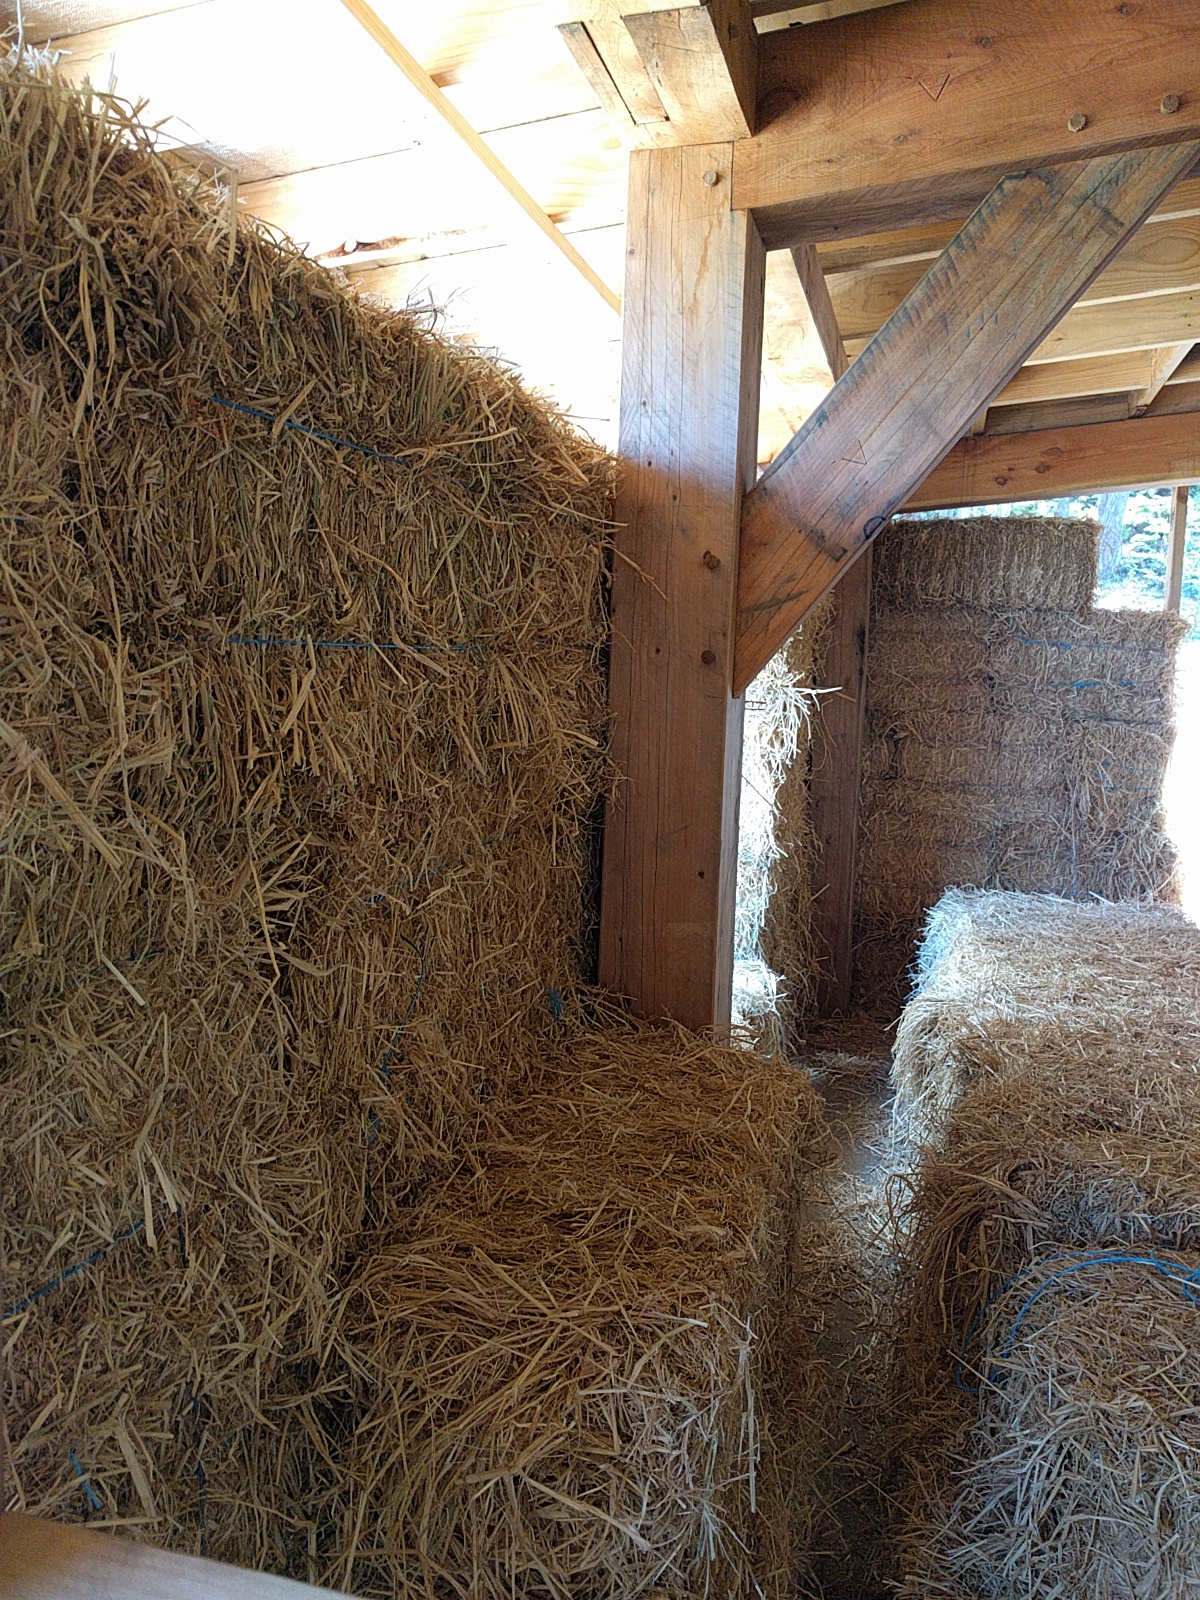 Straw bale workshop – day 1